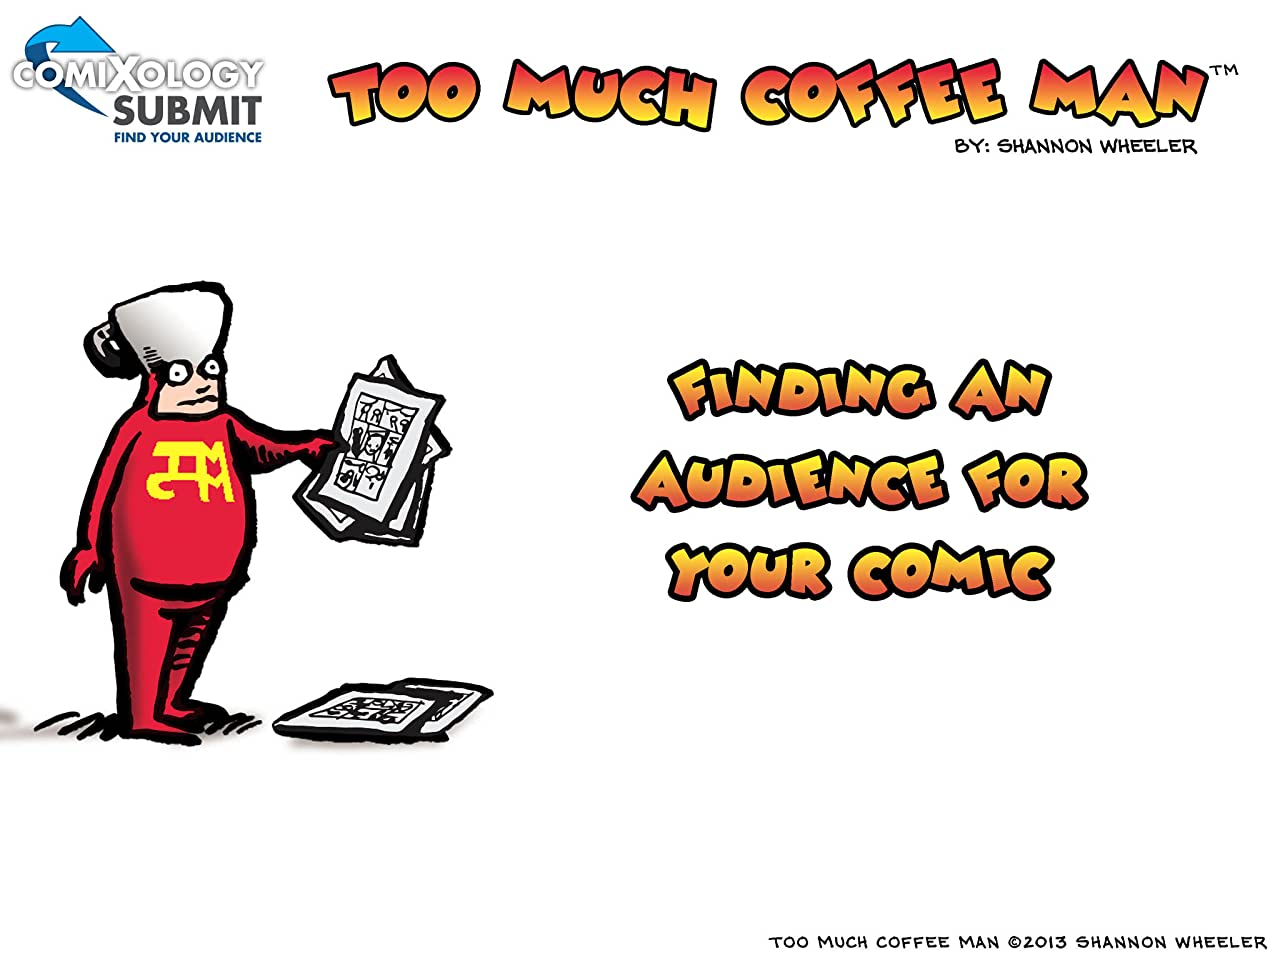 Too Much Coffee Man: comiXology Submit Strips #3